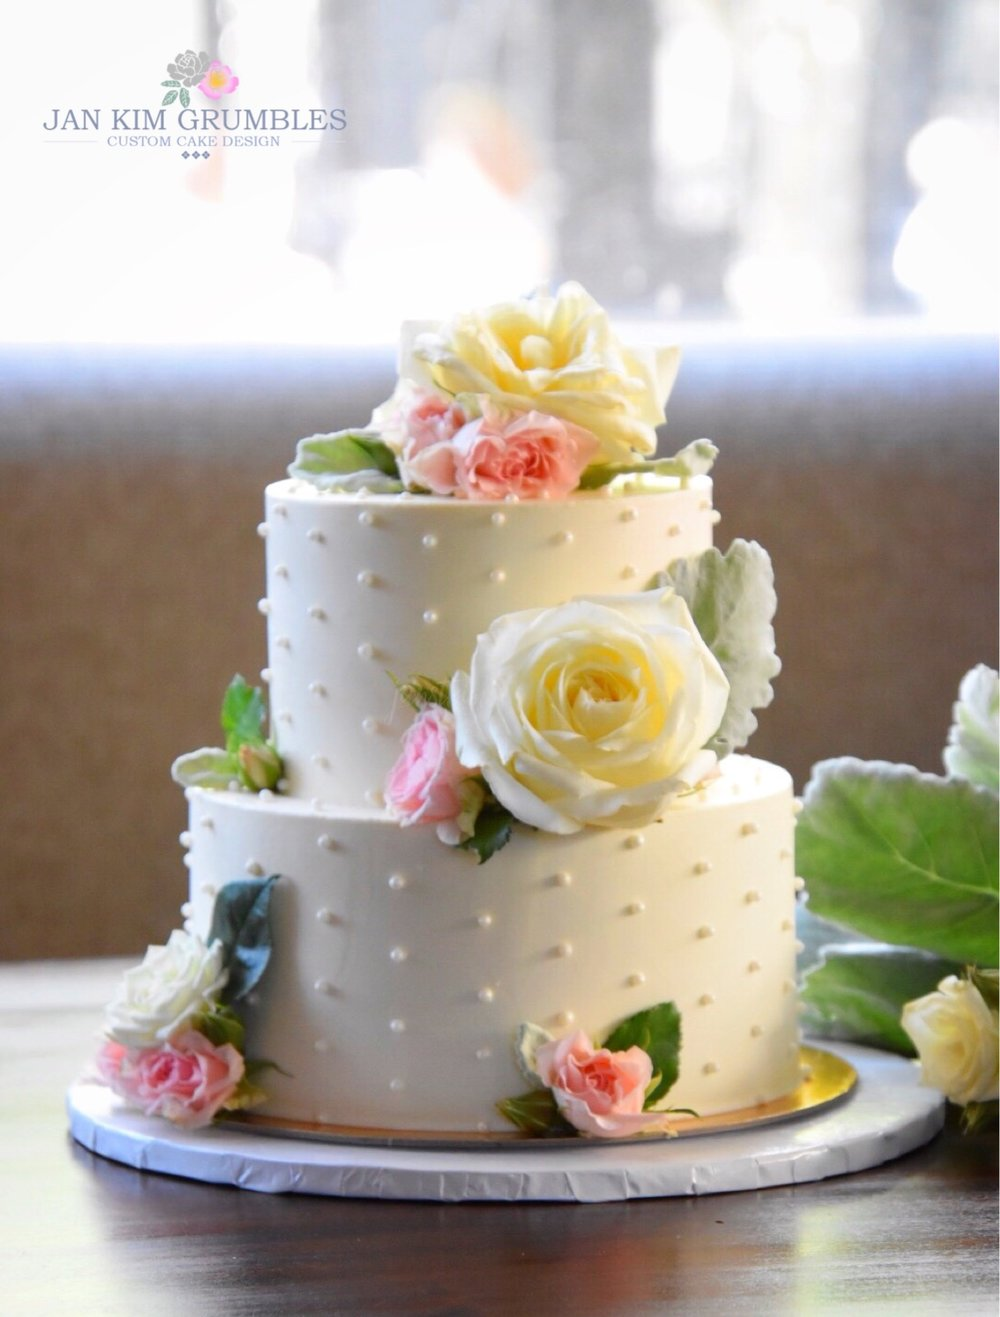 A Cute As A Button Wedding Cake Complete With Fresh Blooms Jan